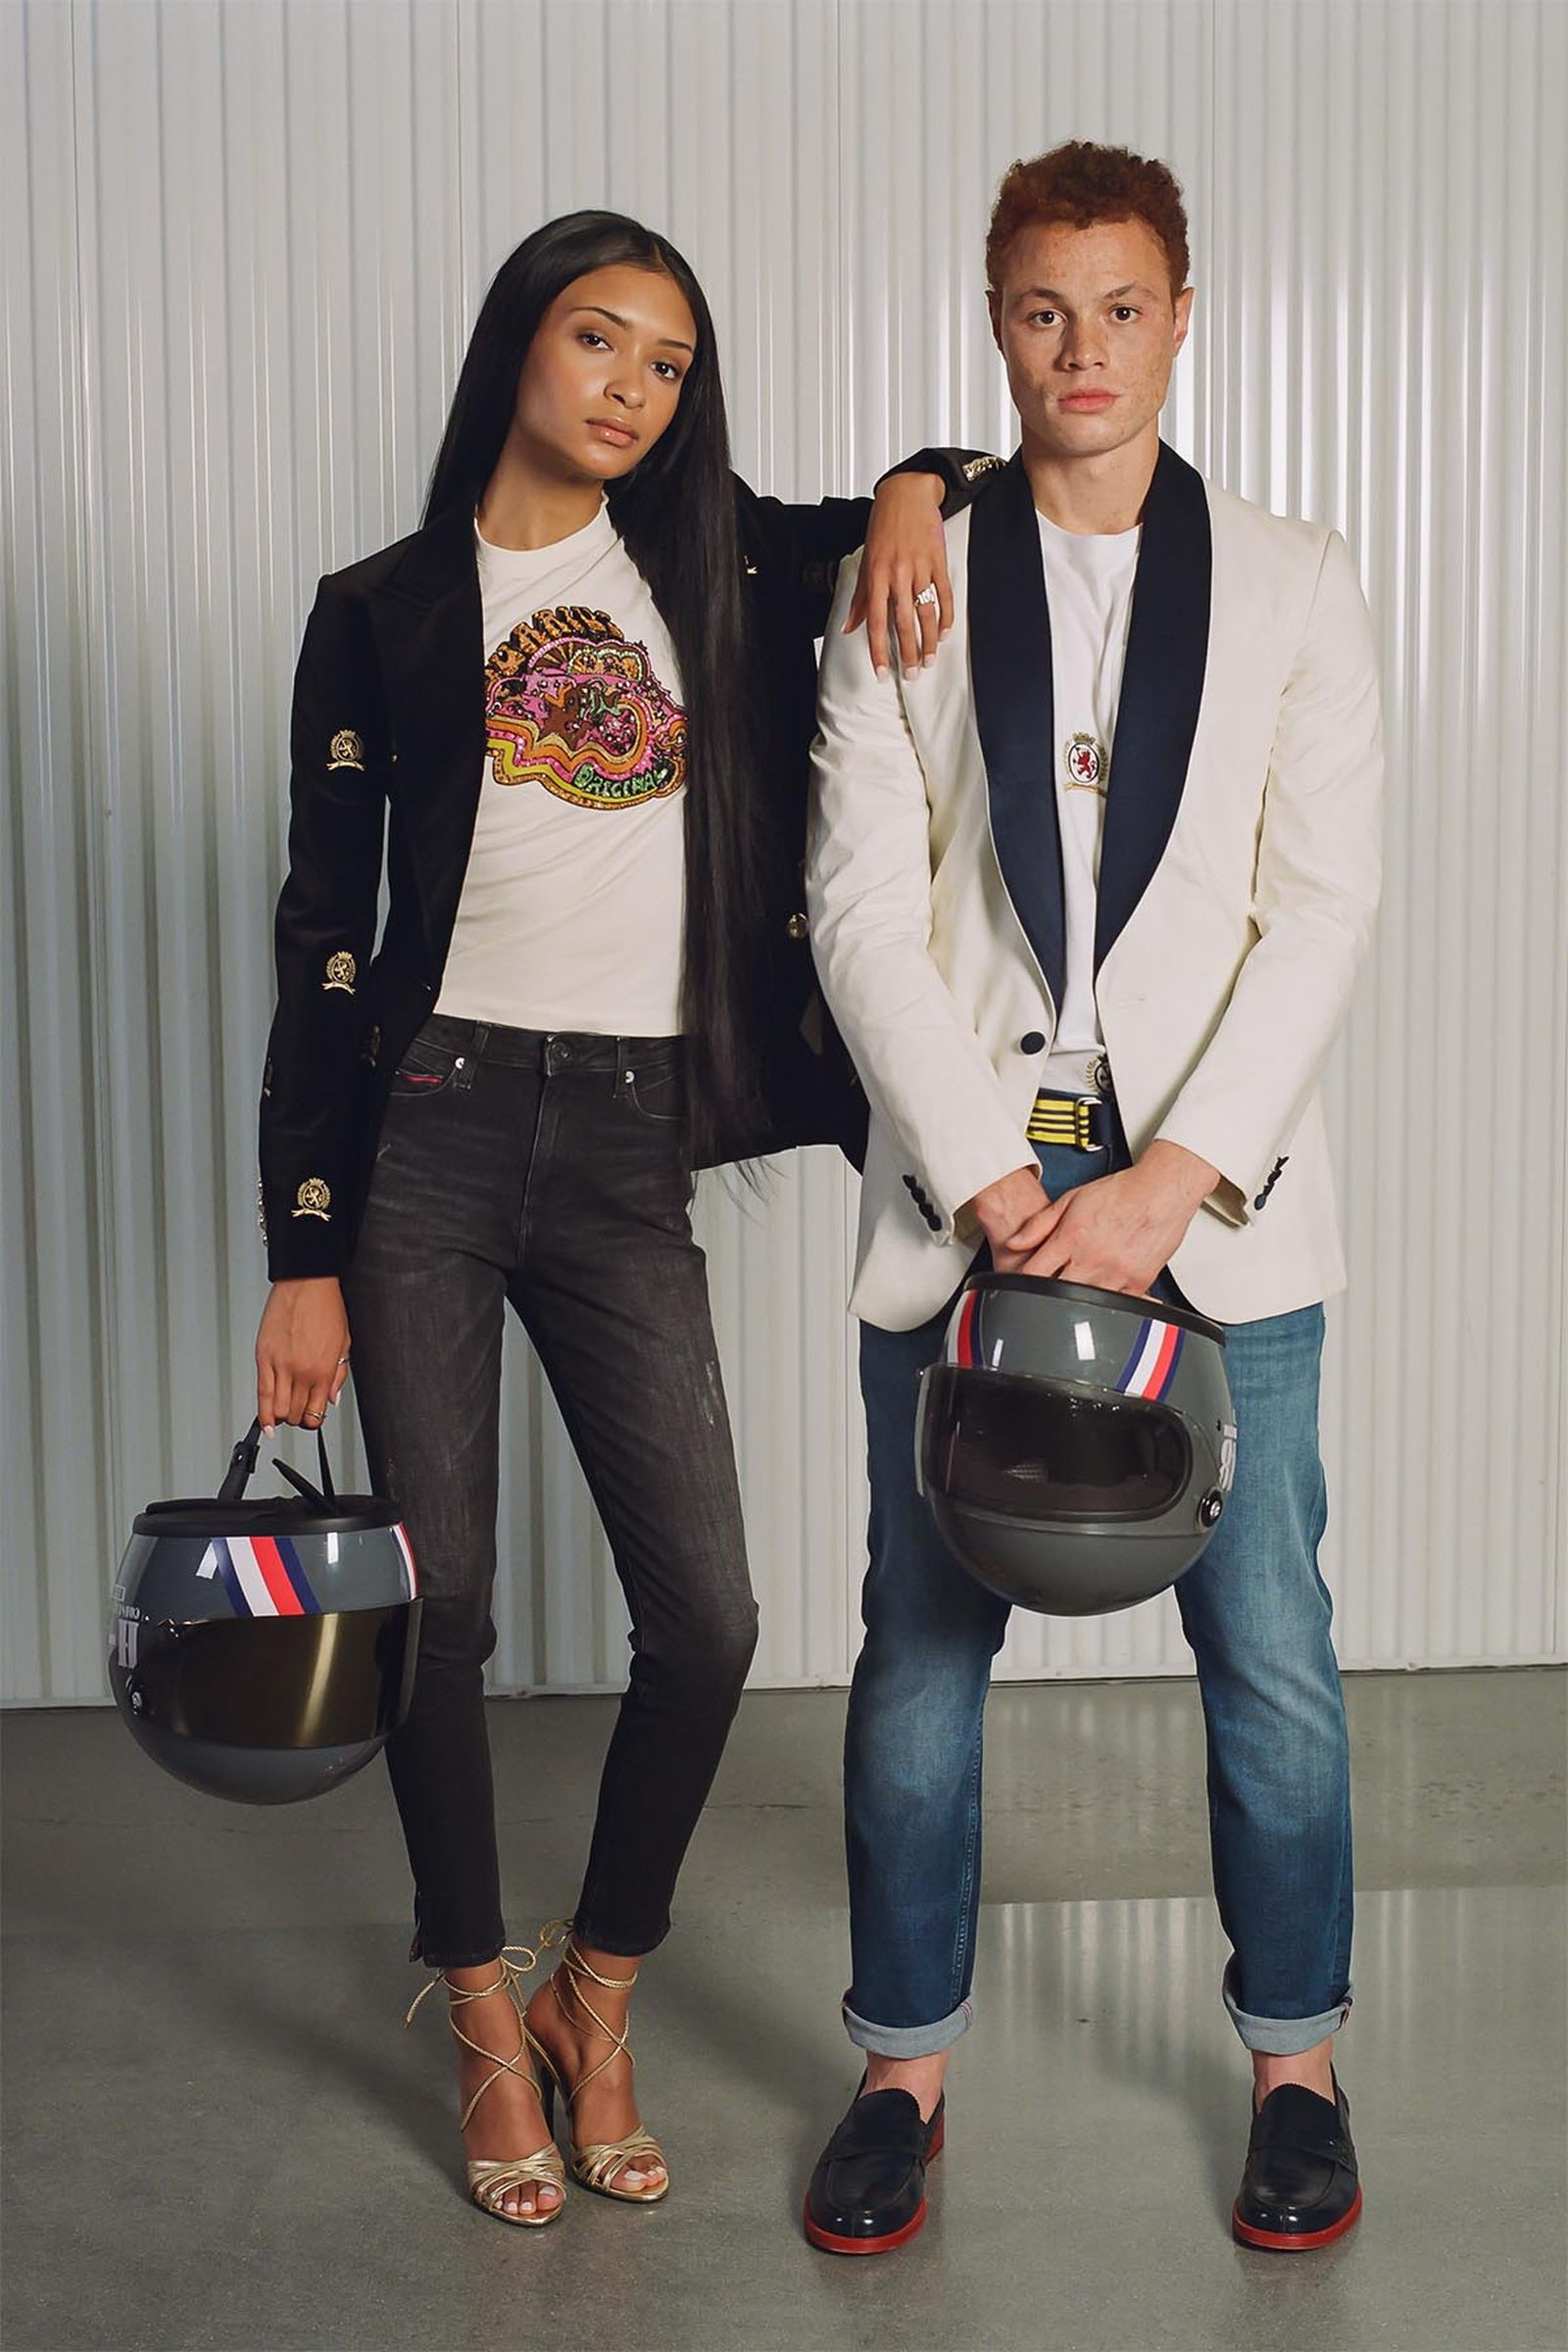 (Left) Hilfiger Collection Women's Critter Crest Blazer (Fall 2020), TommyXZendaya Capsule Collection Zodiac Graphic T-Shirt and Elevated Strappy Sandals (Spring 2019). (Right) Tommy Hilfiger Collection Men's Tuxedo Jacket (Spring 2011), Hilfiger Collection Men's All-over Crest Pocket T-Shirt (Fall 2020), Tommy Jeans Men's Slim-Fit Washed & Worn Jean (Fall 2020)